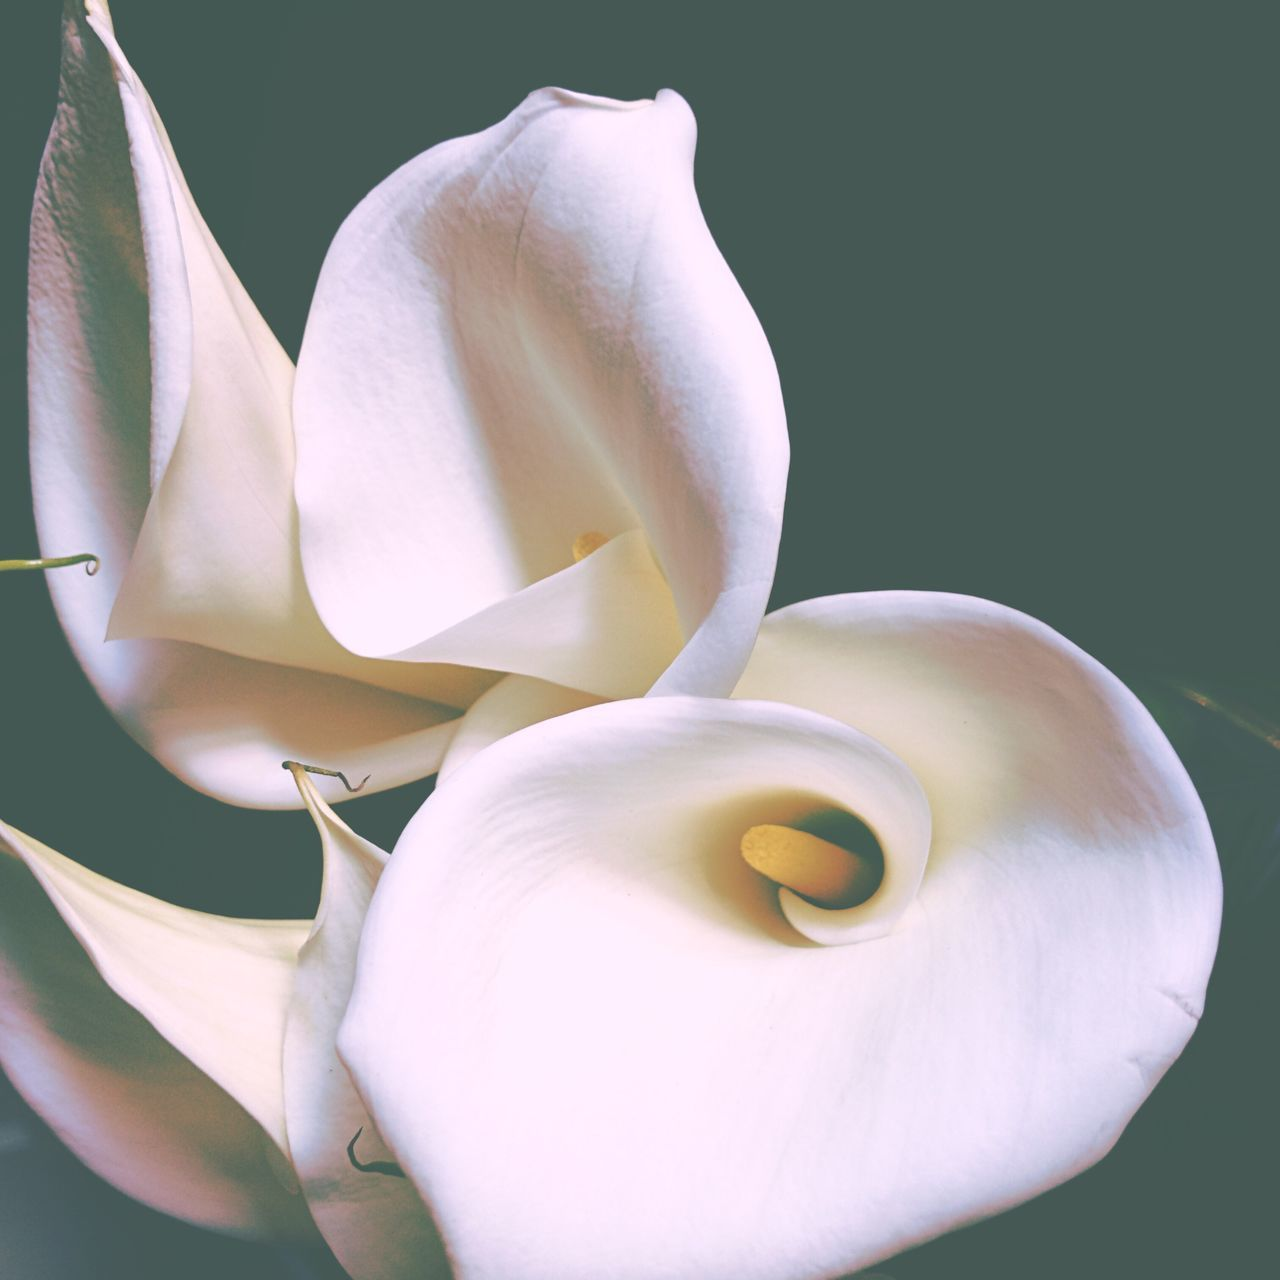 Flower Petal Beauty In Nature Fragility Nature Flower Head Freshness Growth Close-up No People Plant Outdoors Day Calla Lily